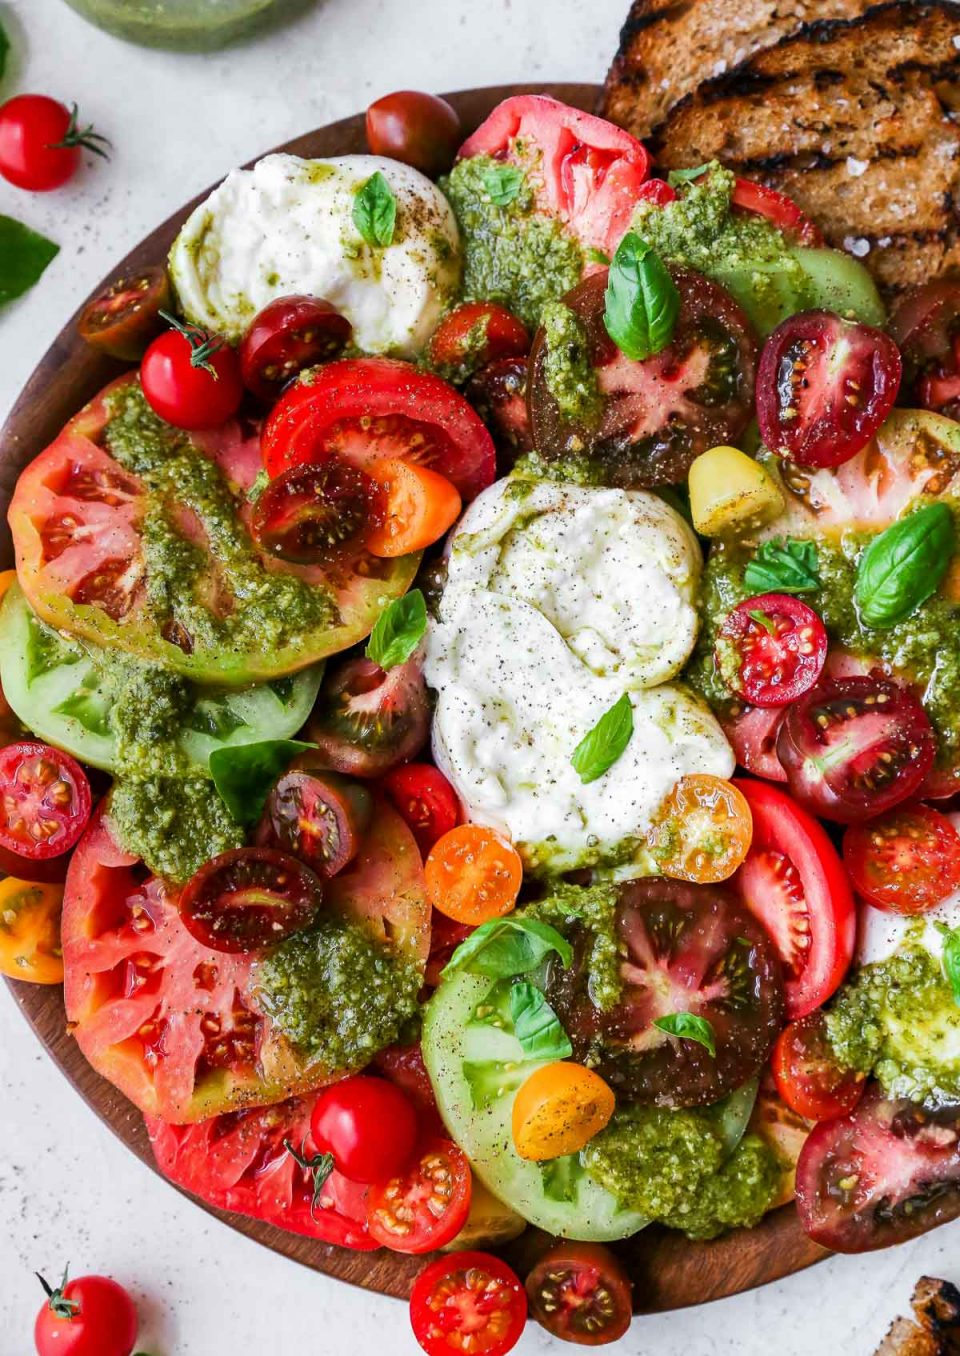 Heirloom tomato burrata salad arranged on a large wooden serving board, topped with vibrant green fresh pesto sauce. The board is surrounded by a few slices of grilled bread & some red cherry tomatoes.